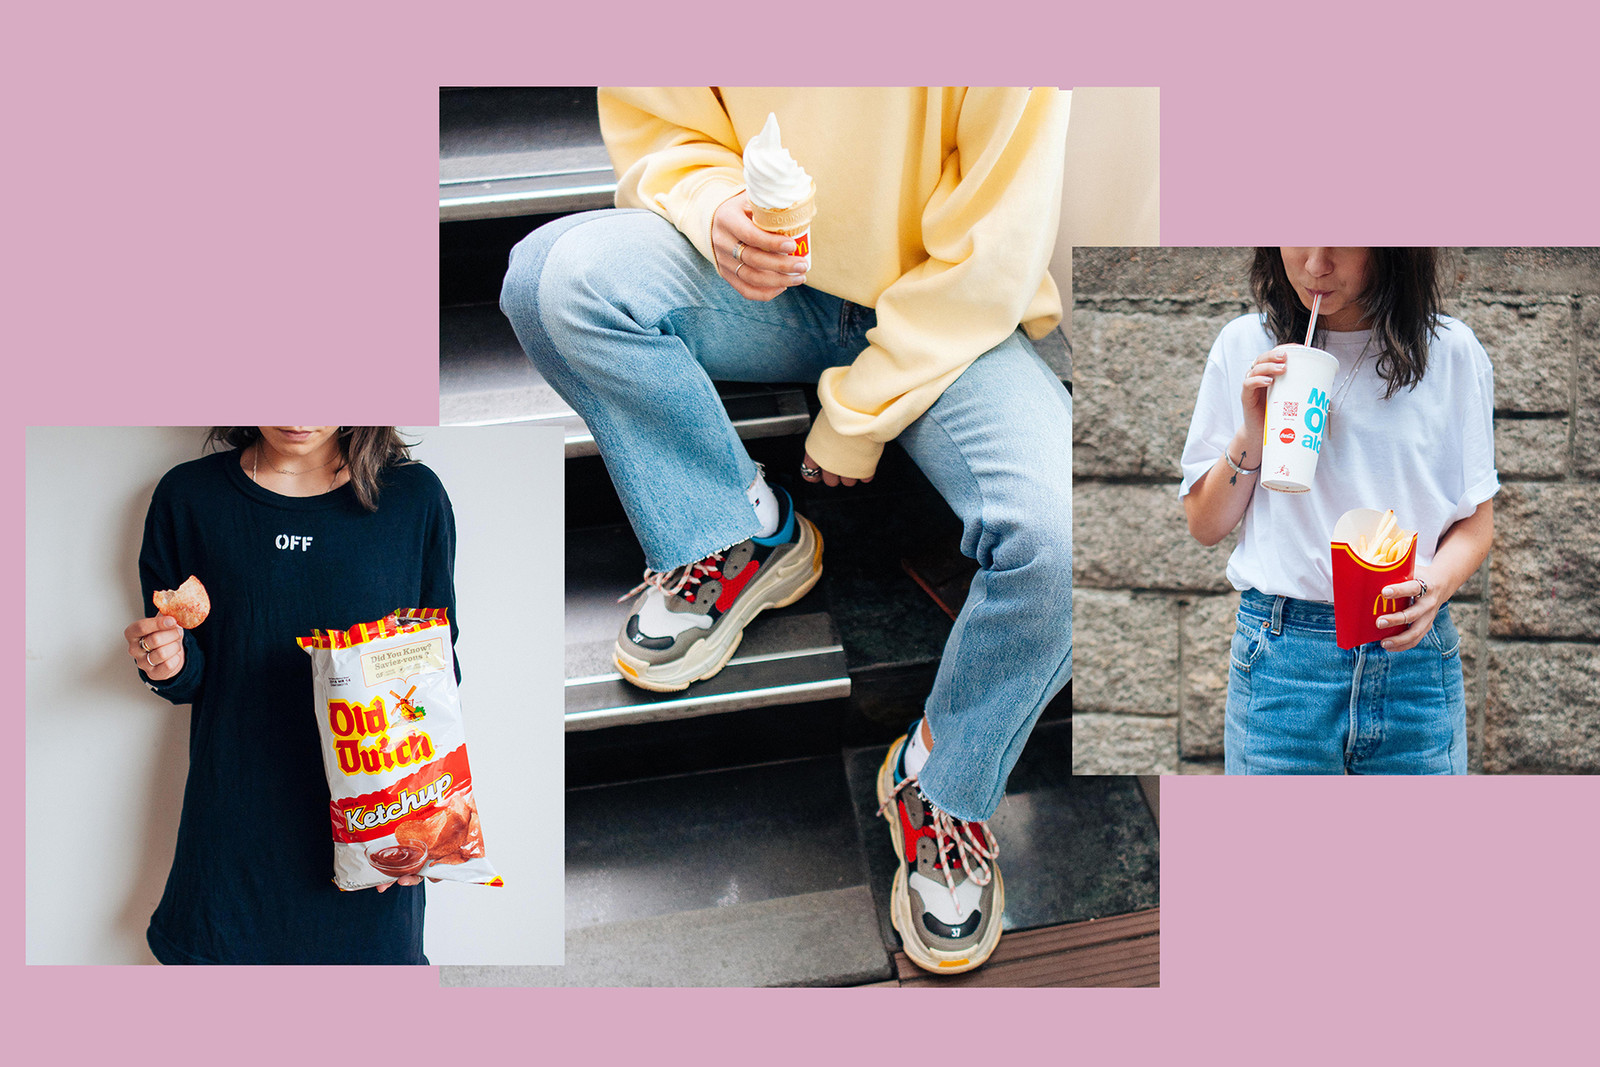 How to Take Perfect HYPEBAE Instagram Photo Supreme Off-White Virgil Abloh Comme des Garcons Louis Vuitton Gucci Designer Bags Sneakers adidas Nike Vetements Alexander Wang